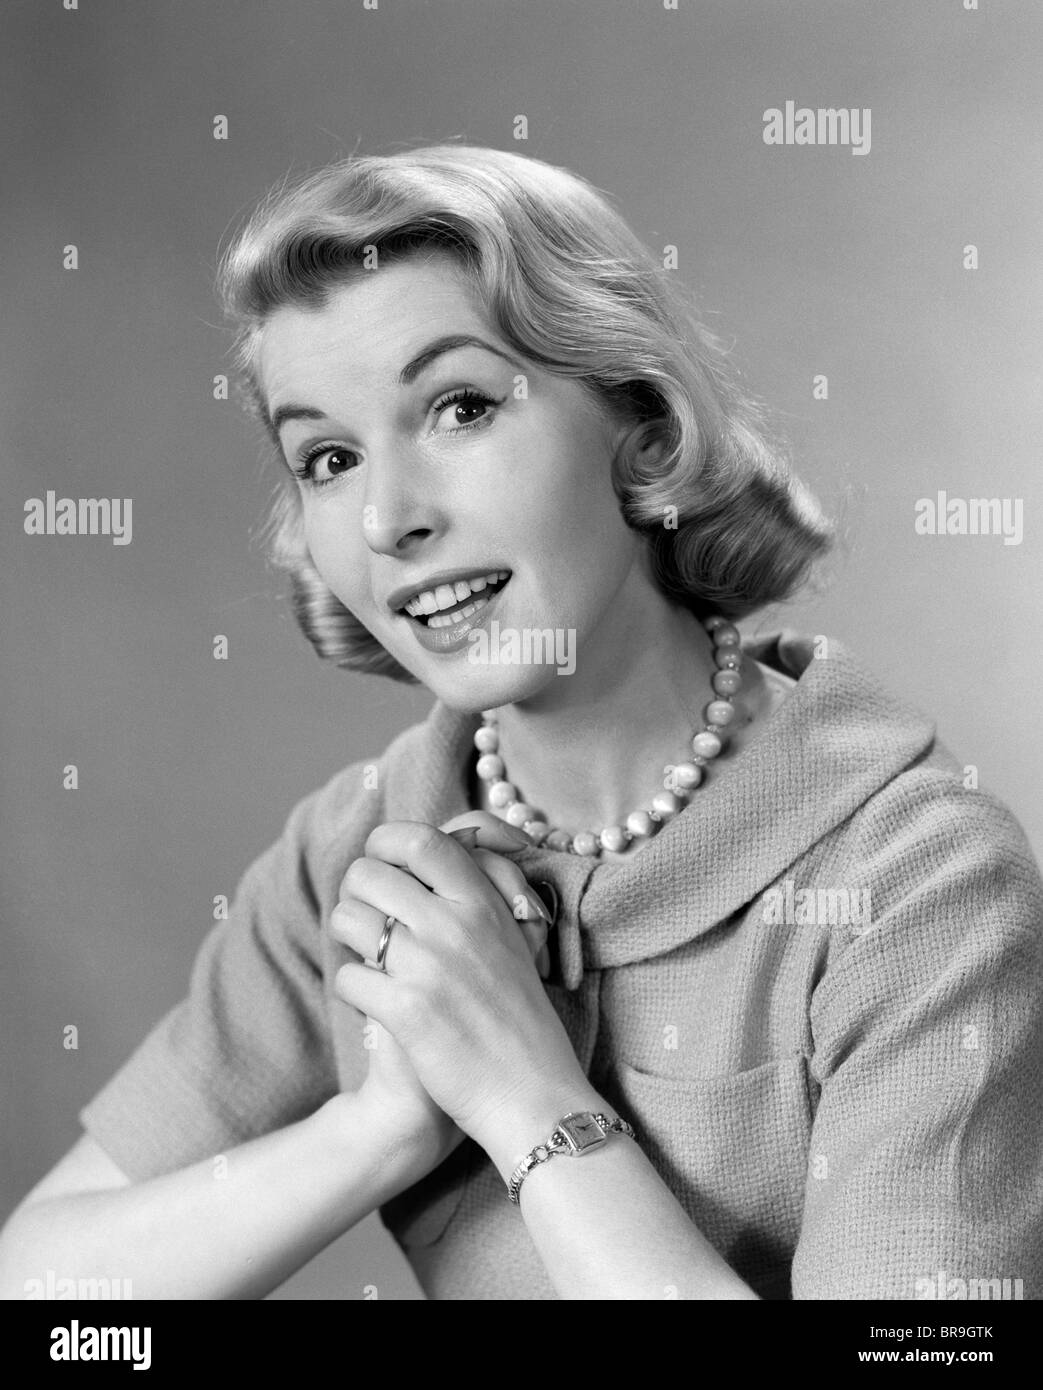 White apron black hands